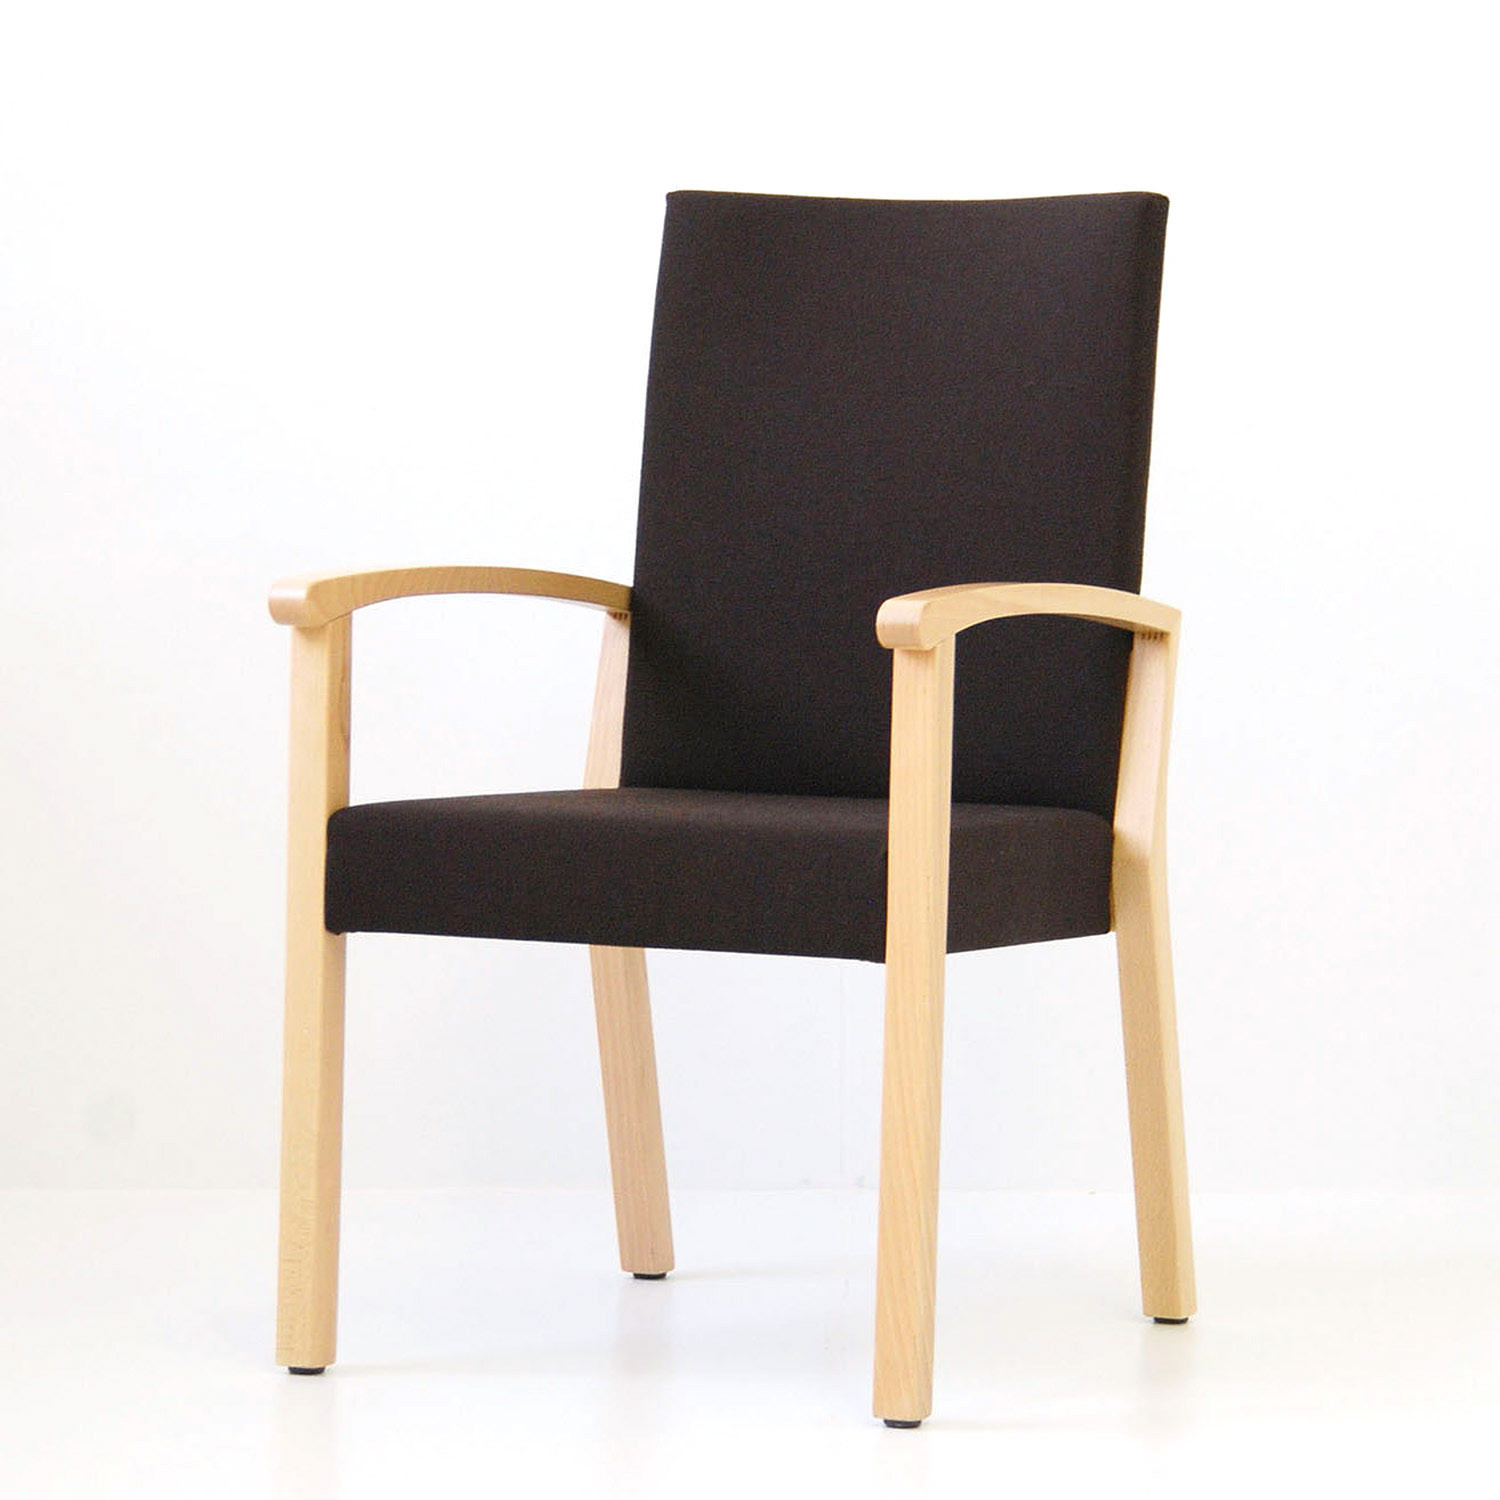 S13 Seating by Wiesner Hager